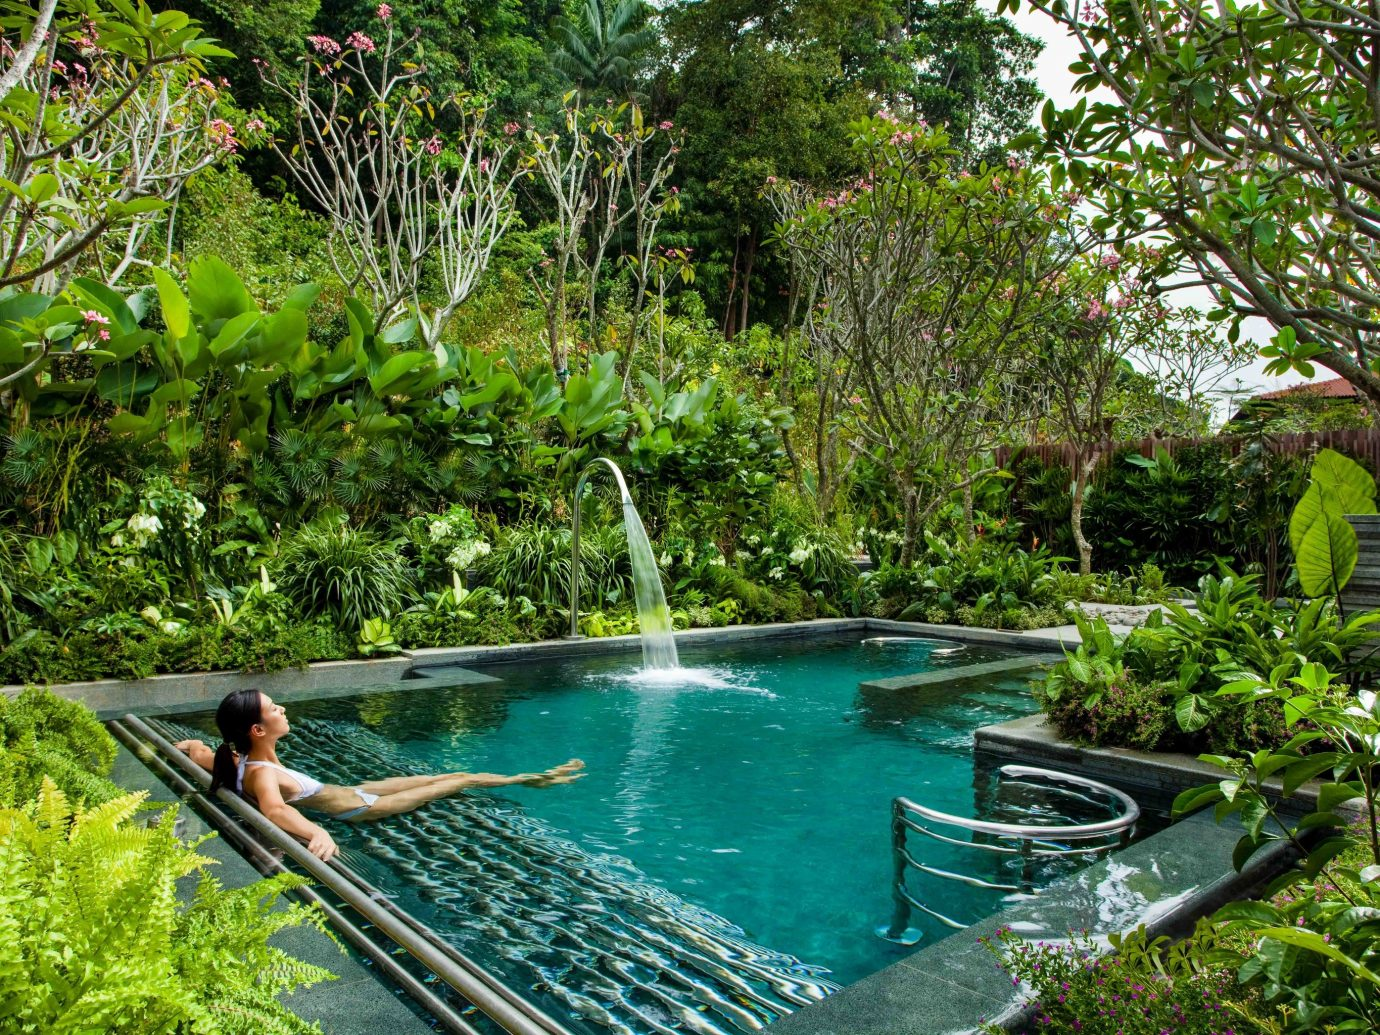 Arts + Culture Singapore Southeast Asia Trip Ideas swimming pool vegetation nature reserve leisure water water resources plant pond Resort watercourse backyard water feature tree estate resort town Garden outdoor structure yard Jungle landscape reflecting pool amenity grass landscaping